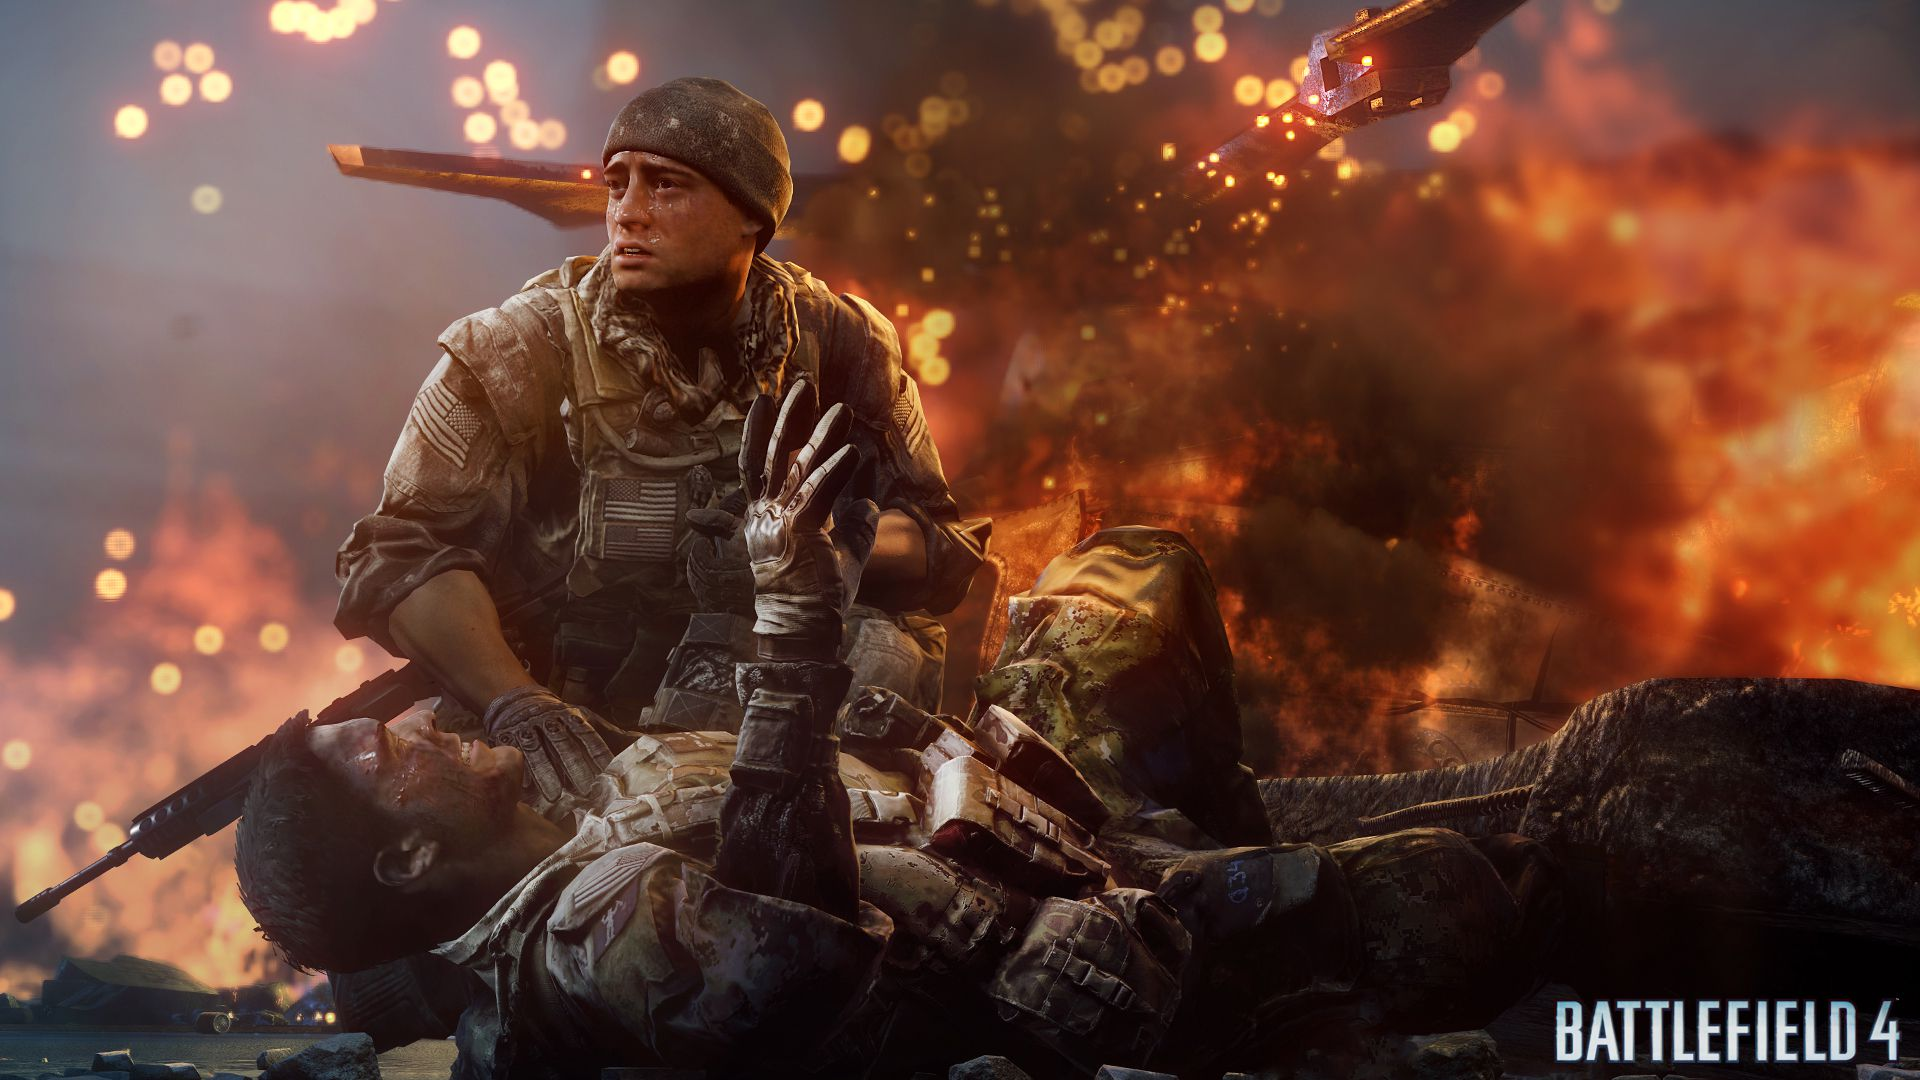 Battlefield 4 System Requirements for the PC